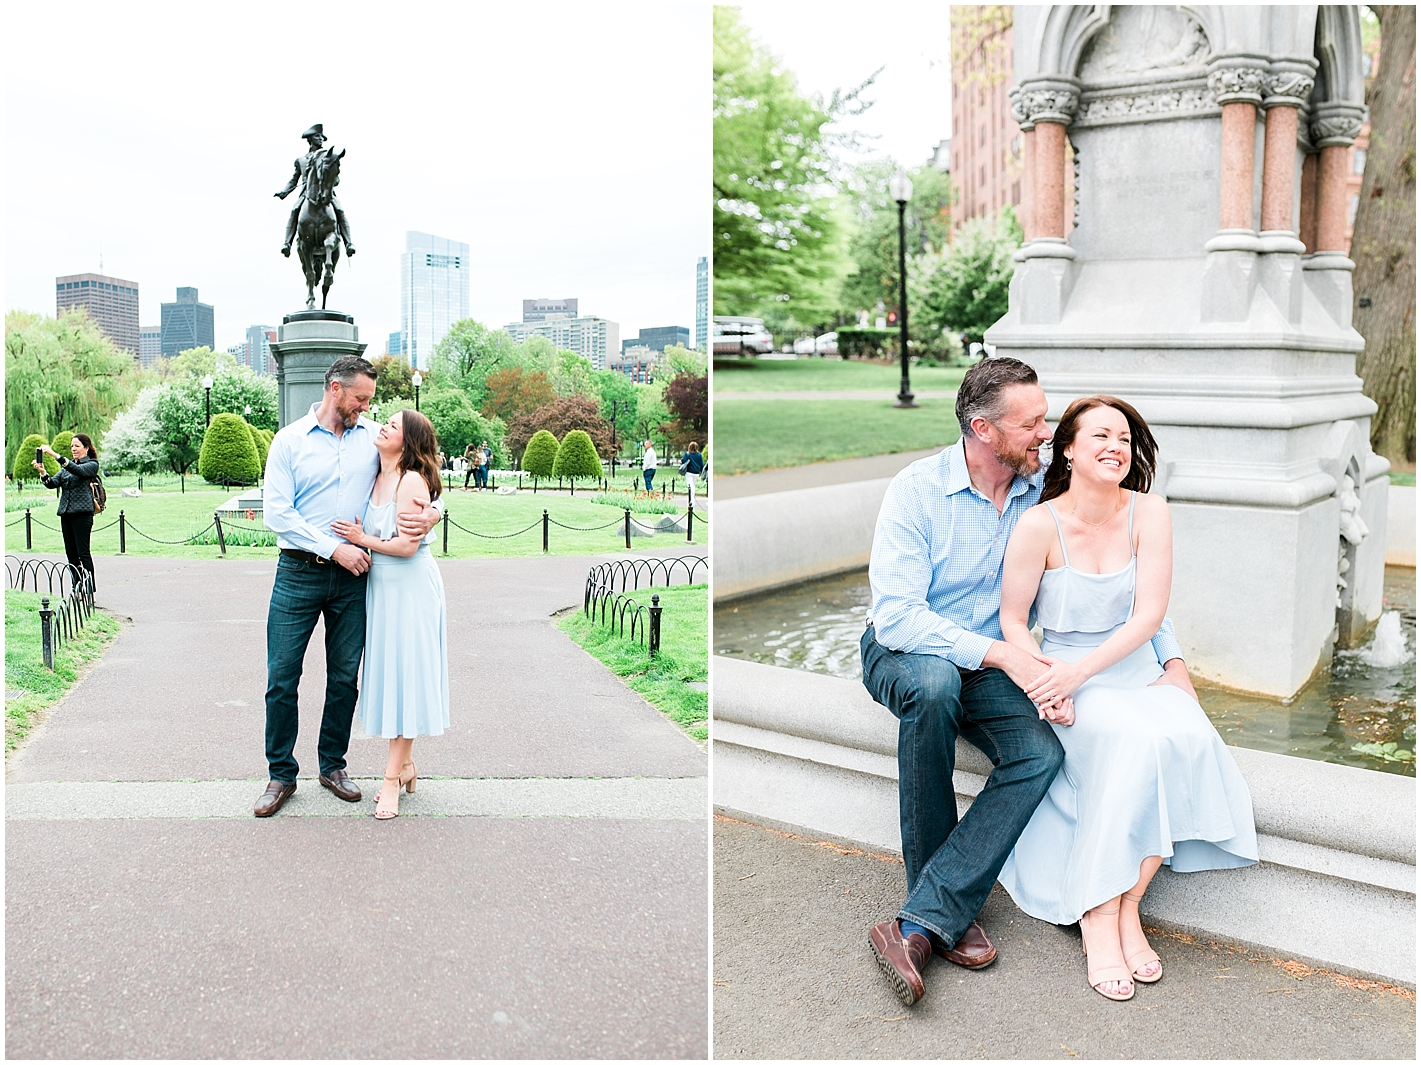 Couples photo shoot in downtown boston by Alyssa Parker Photography